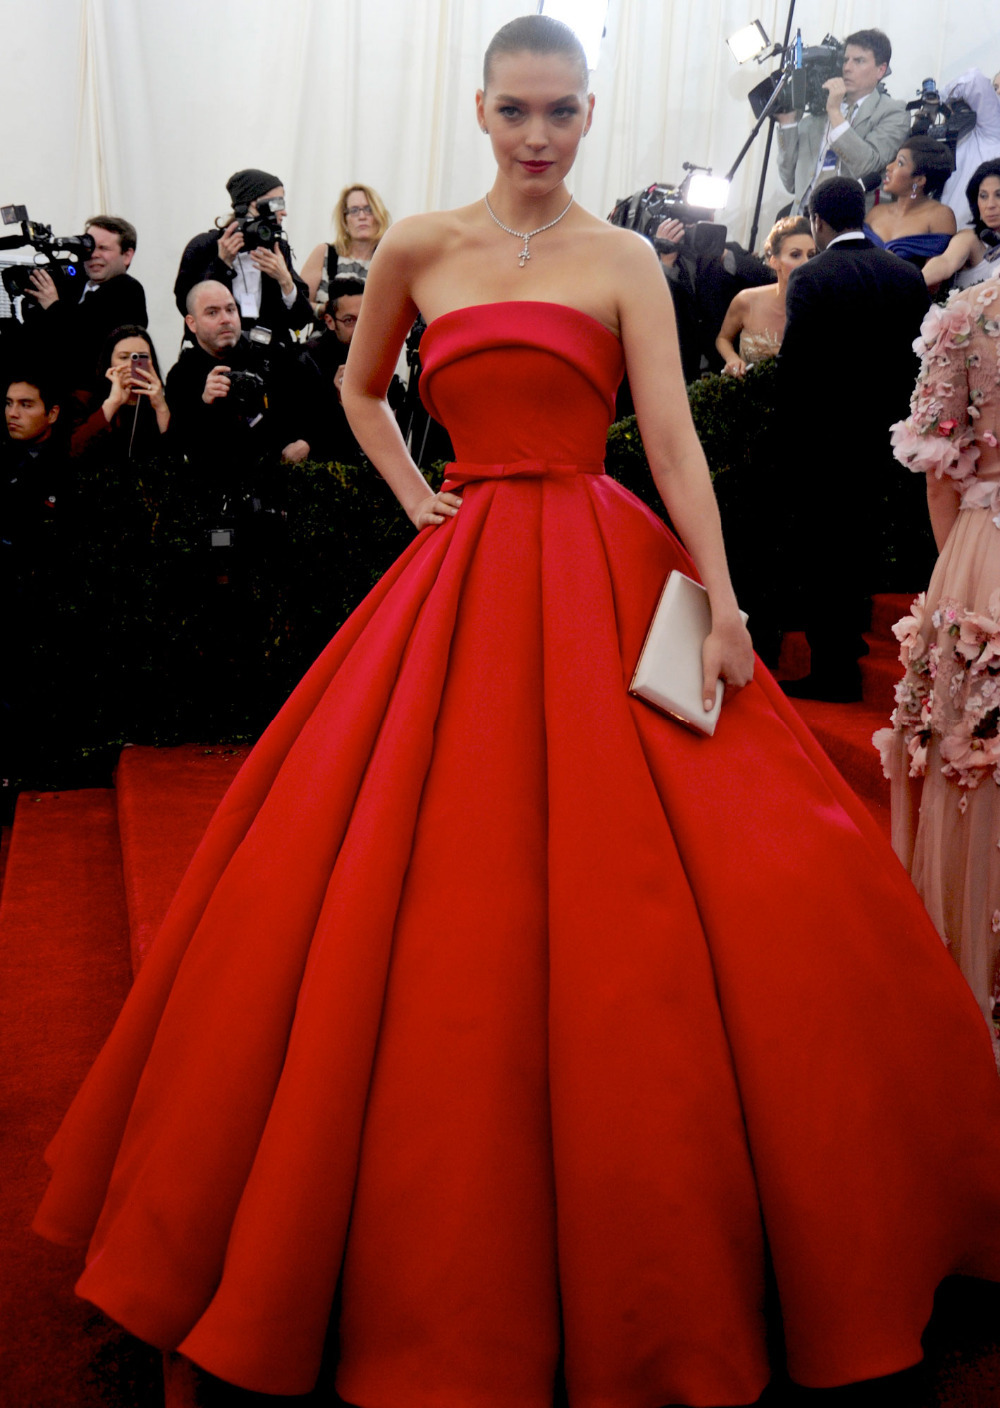 Red Ball Gown Strapless Backless Evening Gowns Elegant Chapel Train ...